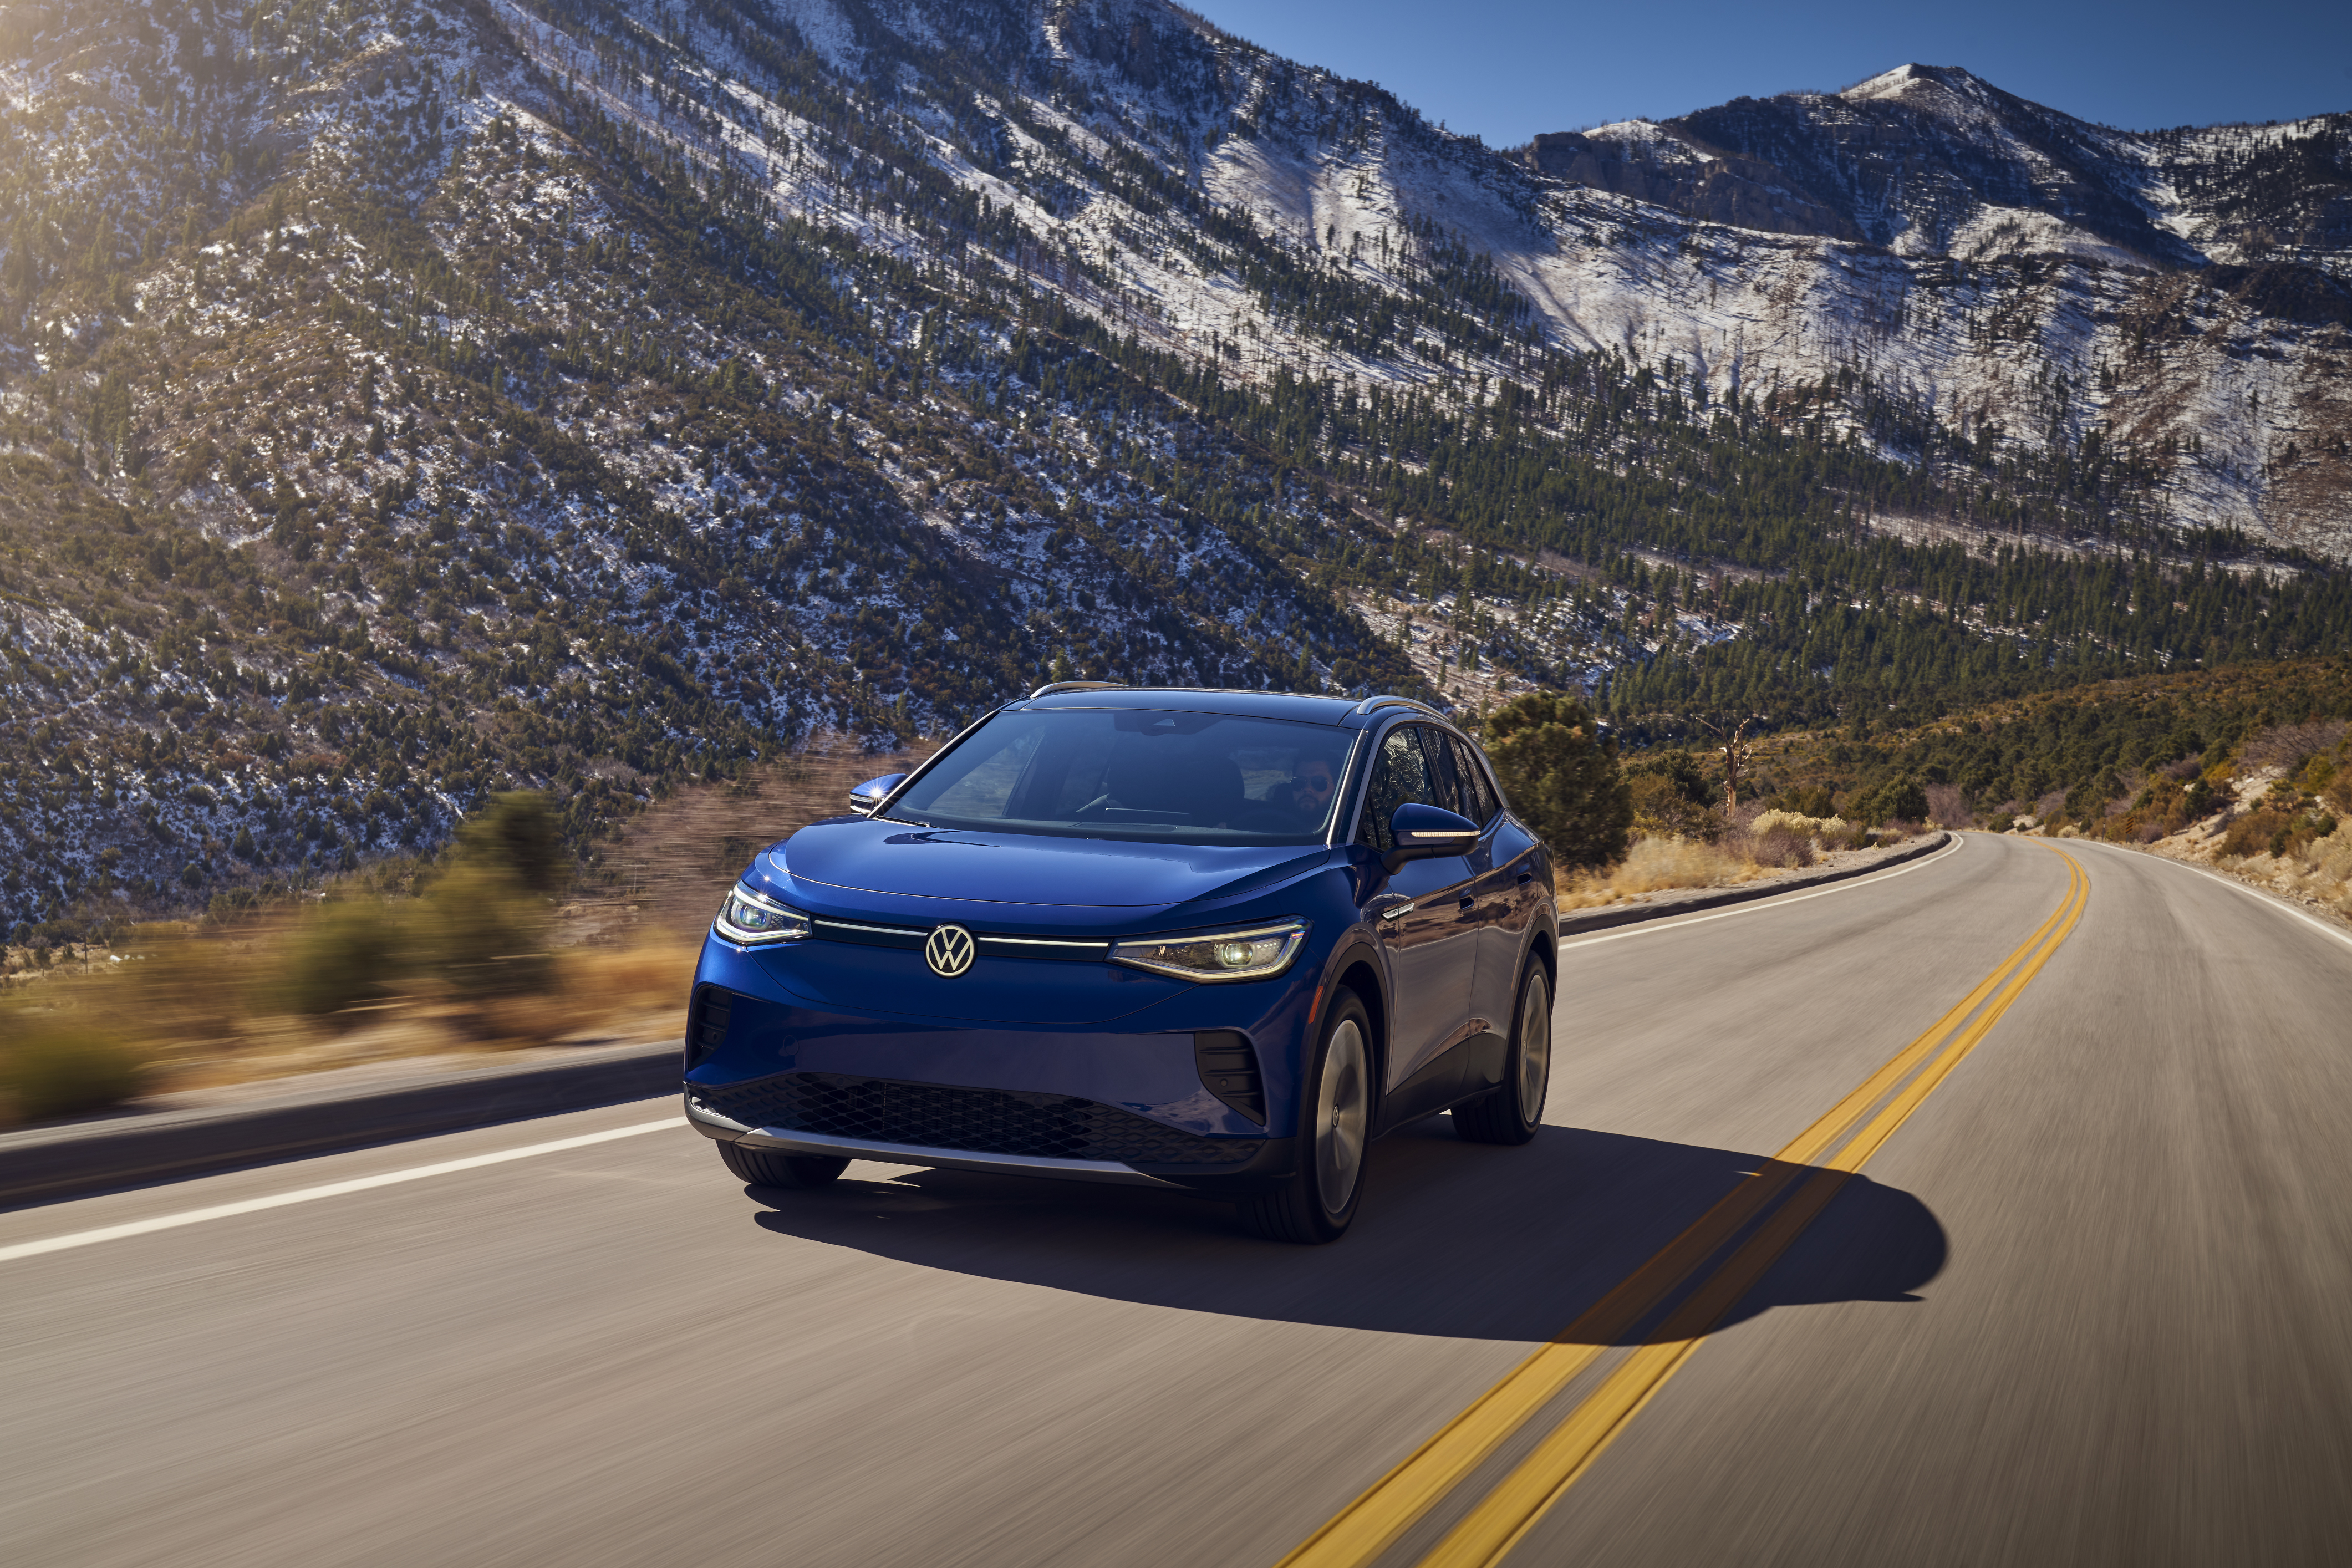 FIRST LOOK: All-New 2021 Volkswagen ID.4 Electric